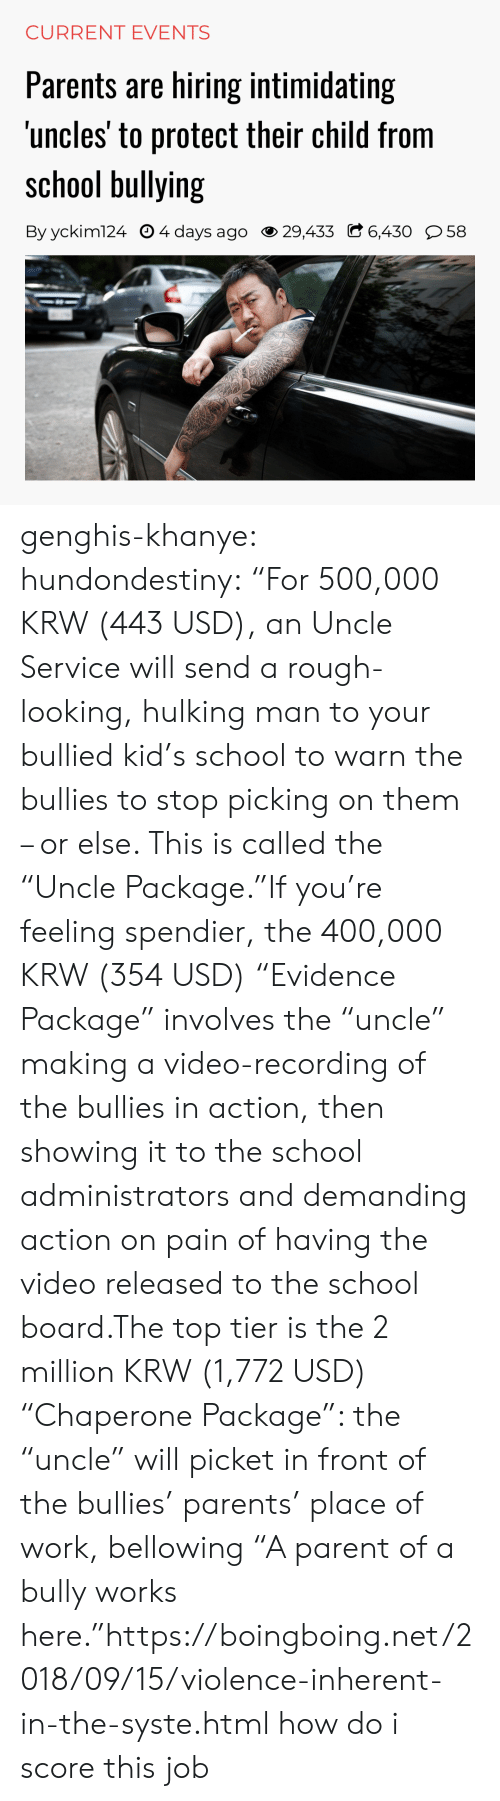 "Carolina Panthers: CURRENT EVENTS  Parents are hiring intimidating  uncles' to protect their child from  school bullying  By yckim124 O 4 days ago 29,433 C 6,430 58 genghis-khanye: hundondestiny: ""For 500,000 KRW (443 USD), an Uncle Service will send a rough-looking, hulking man to your bullied kid's school to warn the bullies to stop picking on them – or else. This is called the ""Uncle Package.""If you're feeling spendier, the 400,000 KRW (354 USD) ""Evidence Package"" involves the ""uncle"" making a video-recording of the bullies in action, then showing it to the school administrators and demanding action on pain of having the video released to the school board.The top tier is the 2 million KRW (1,772 USD) ""Chaperone Package"": the ""uncle"" will picket in front of the bullies' parents' place of work, bellowing ""A parent of a bully works here.""https://boingboing.net/2018/09/15/violence-inherent-in-the-syste.html  how do i score this job"